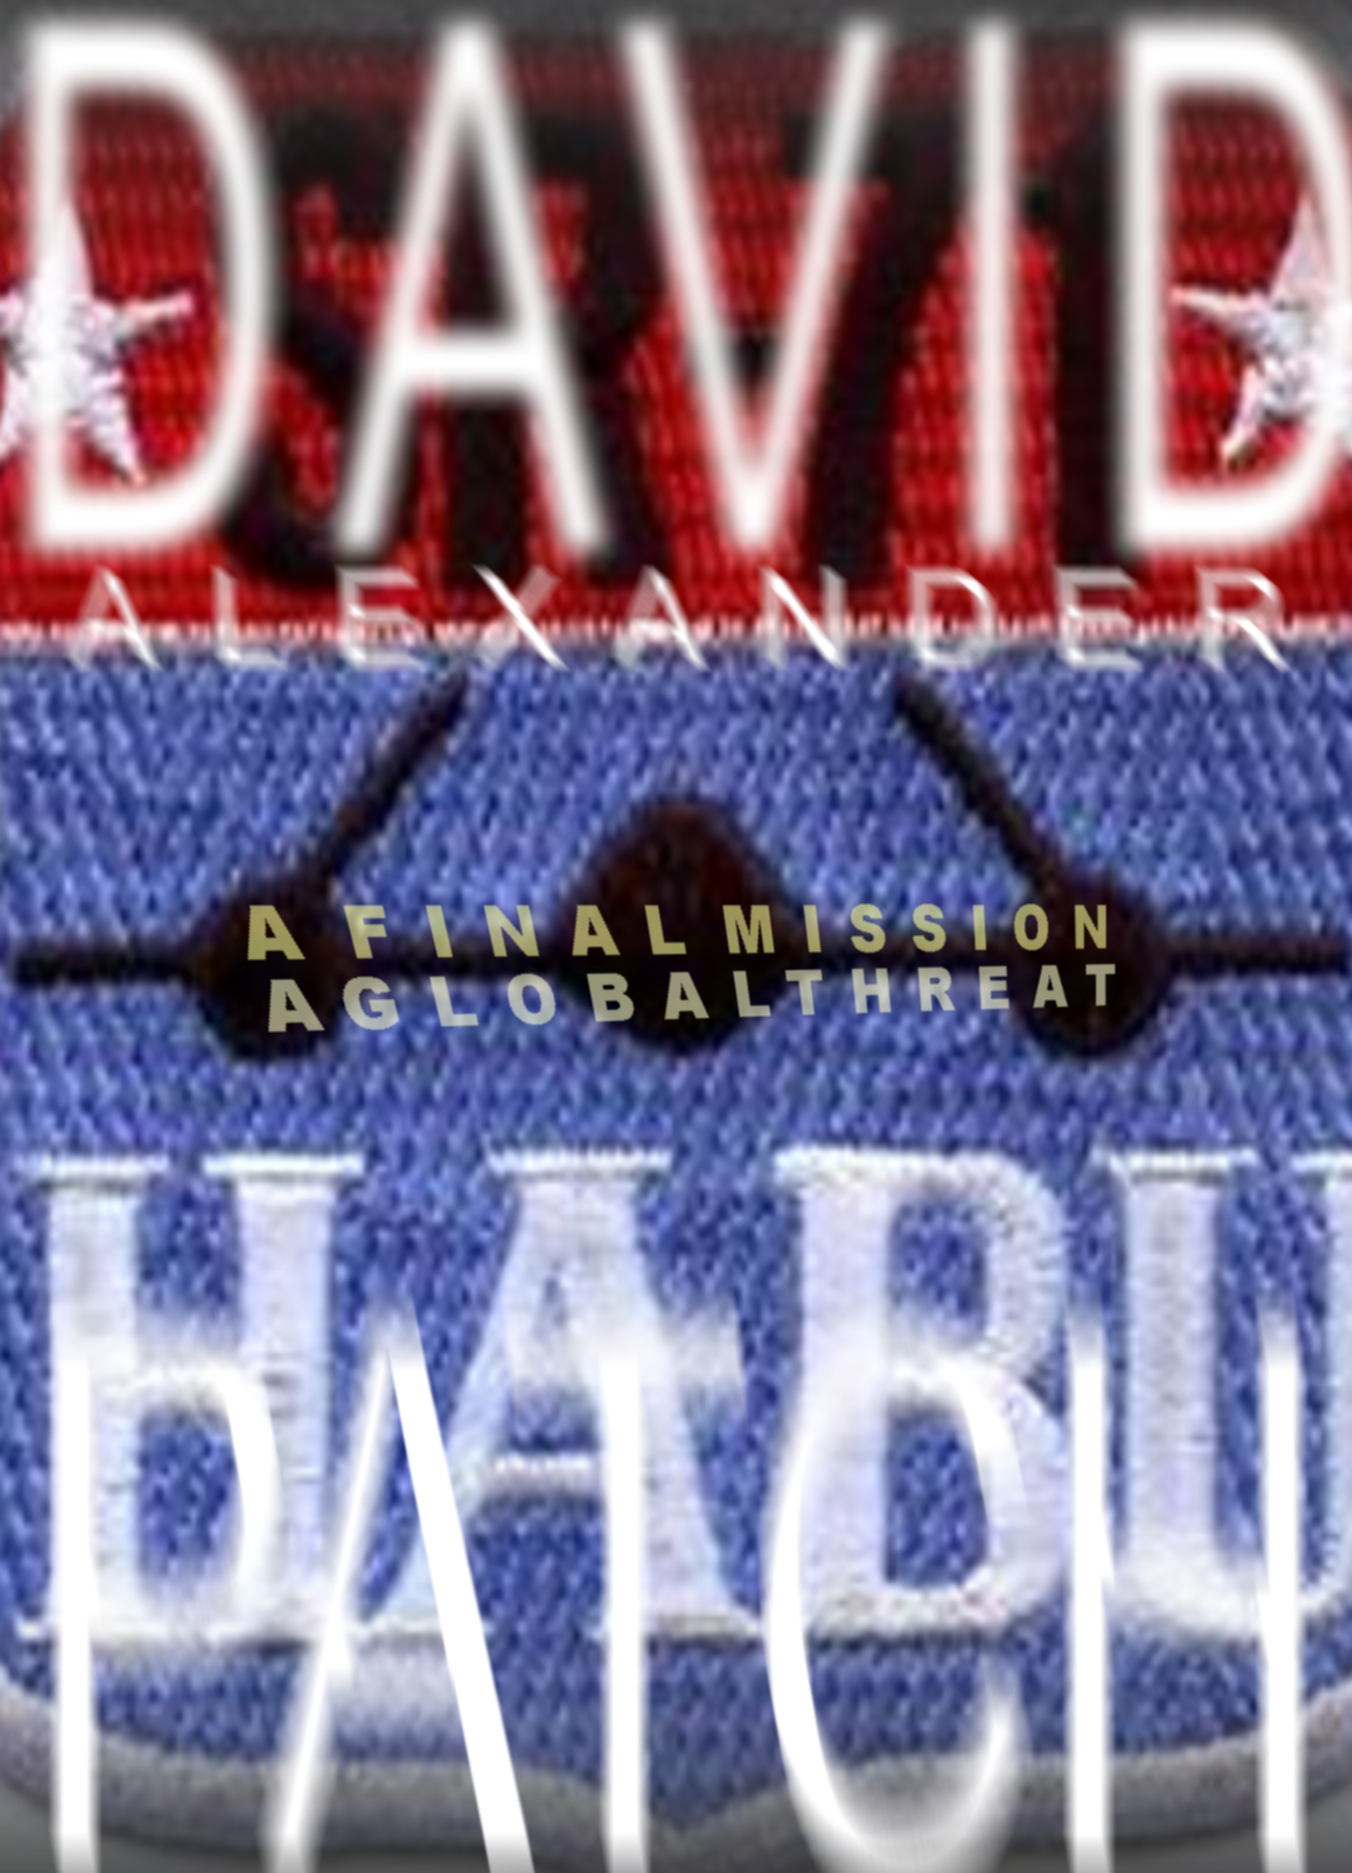 Habu Patch by Author David Alexander.